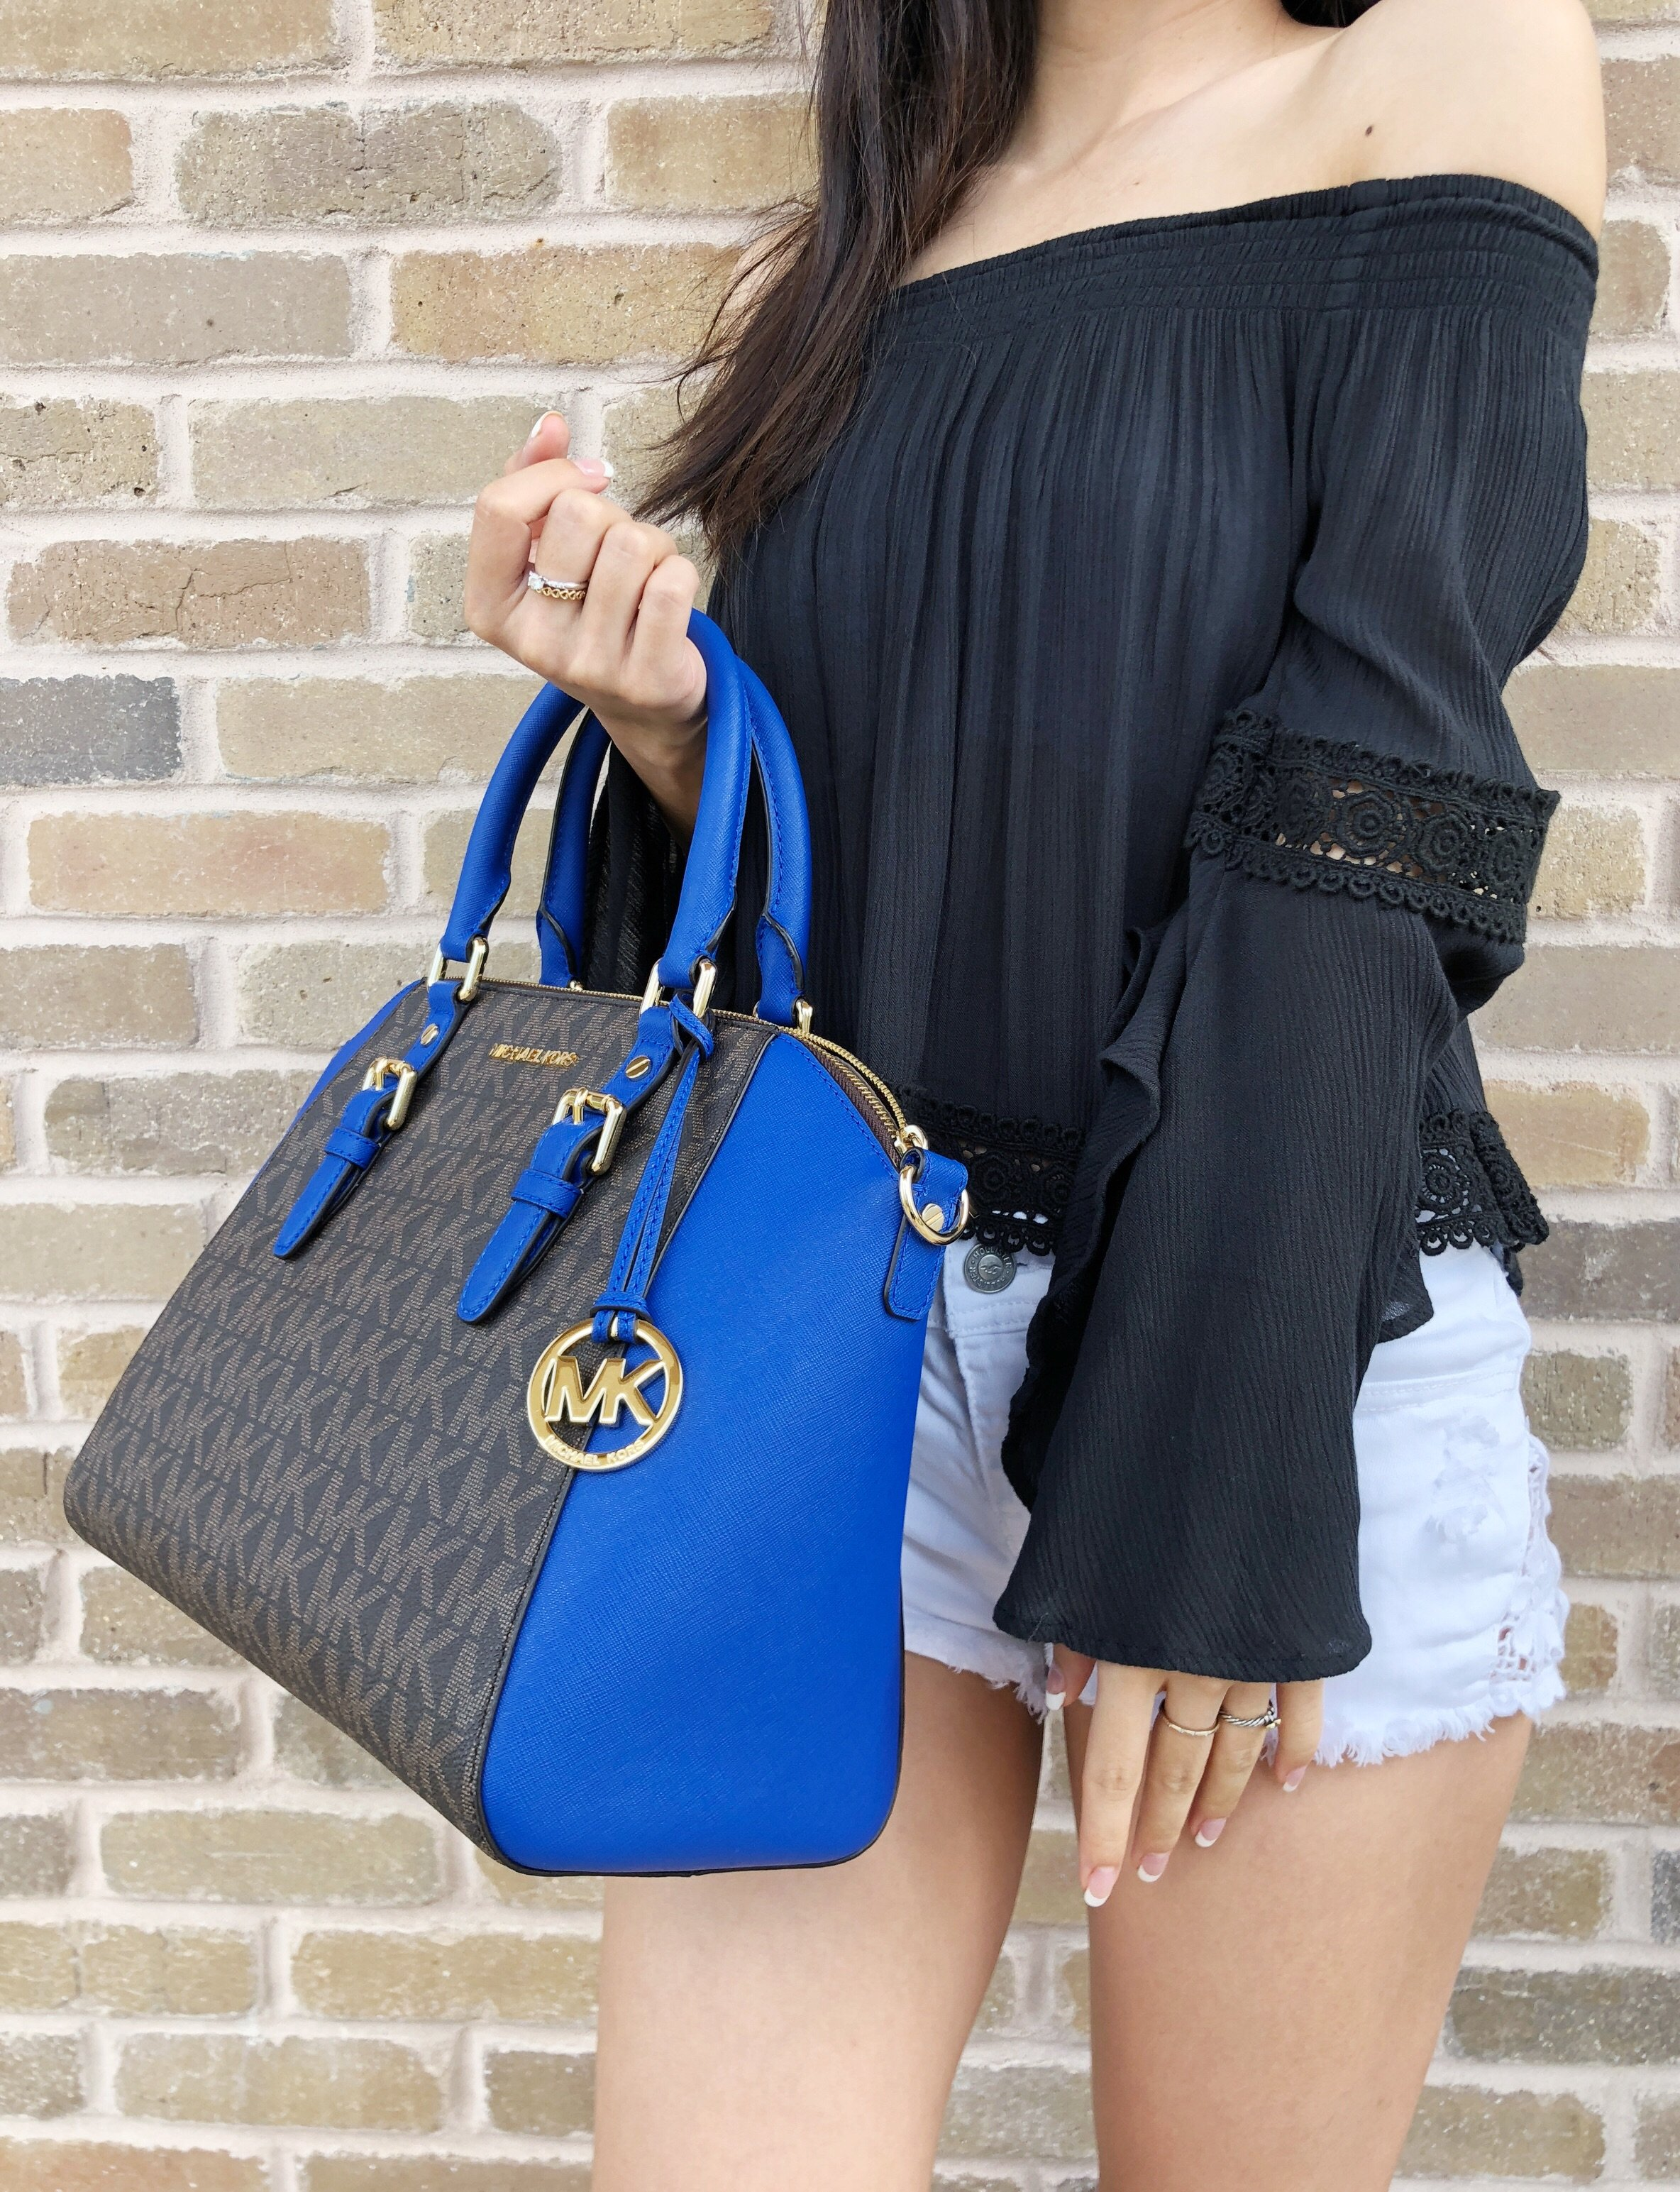 1b4bb3222ad7 Michael Kors - Michael Kors Ciara Large Zip Satchel Crossbody Brown MK  Electric Blue - Walmart.com